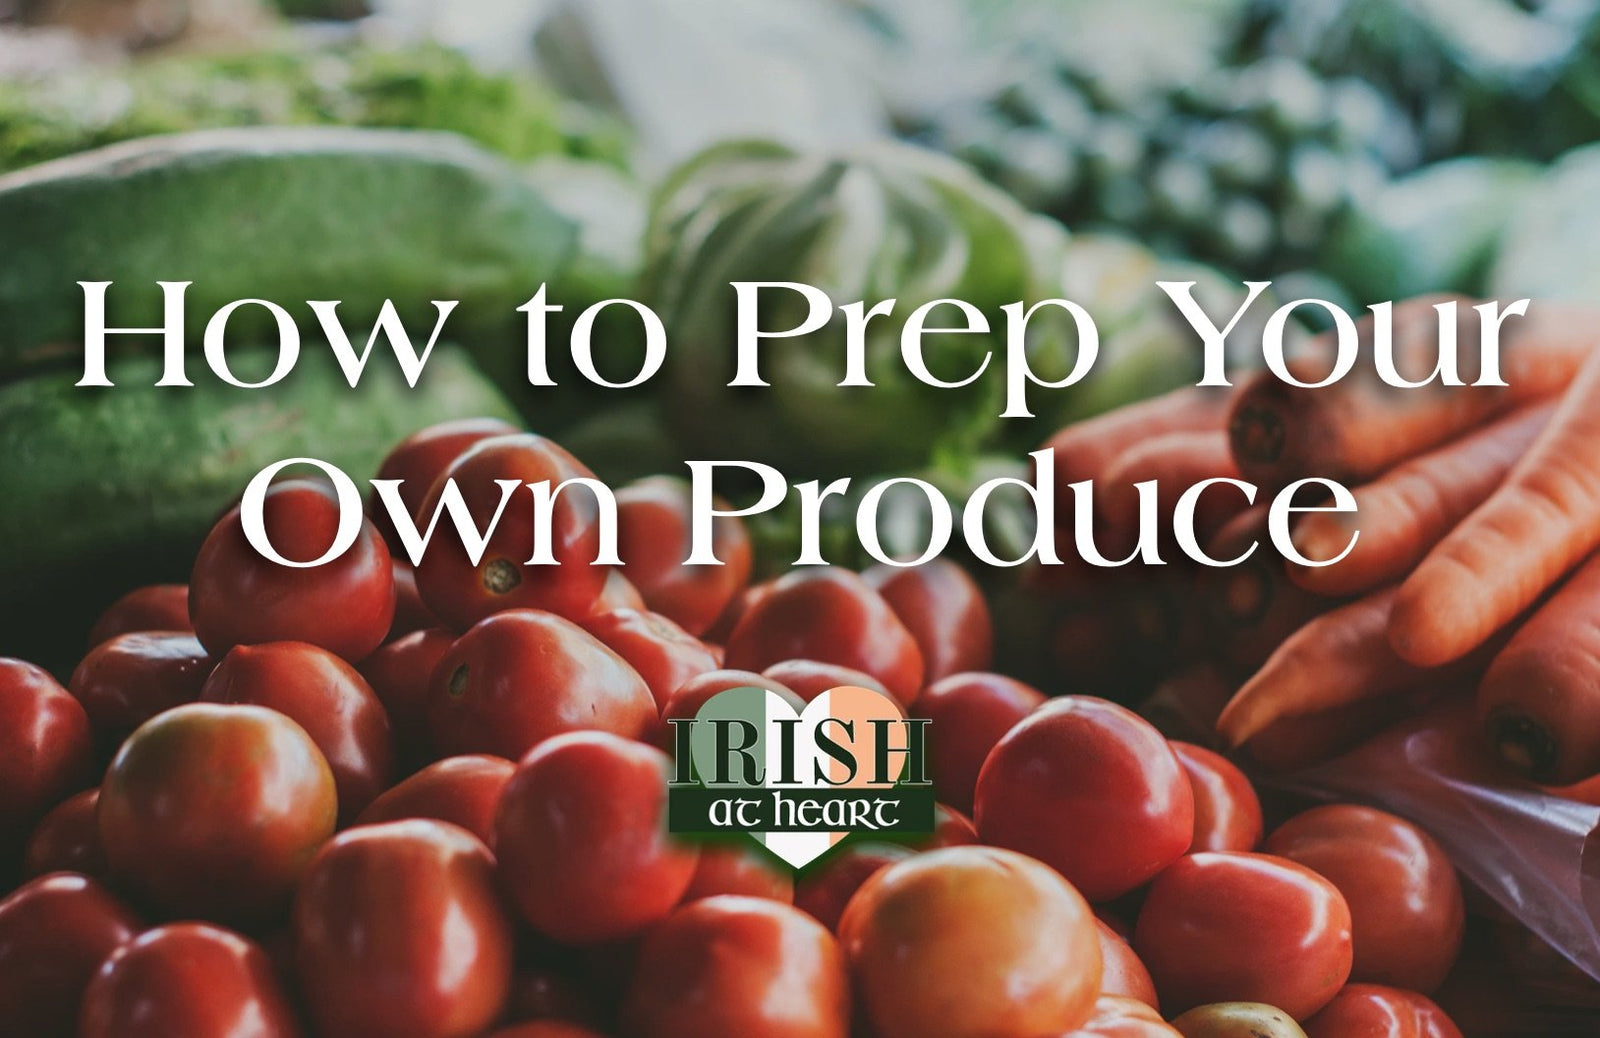 Prep Your Own Produce